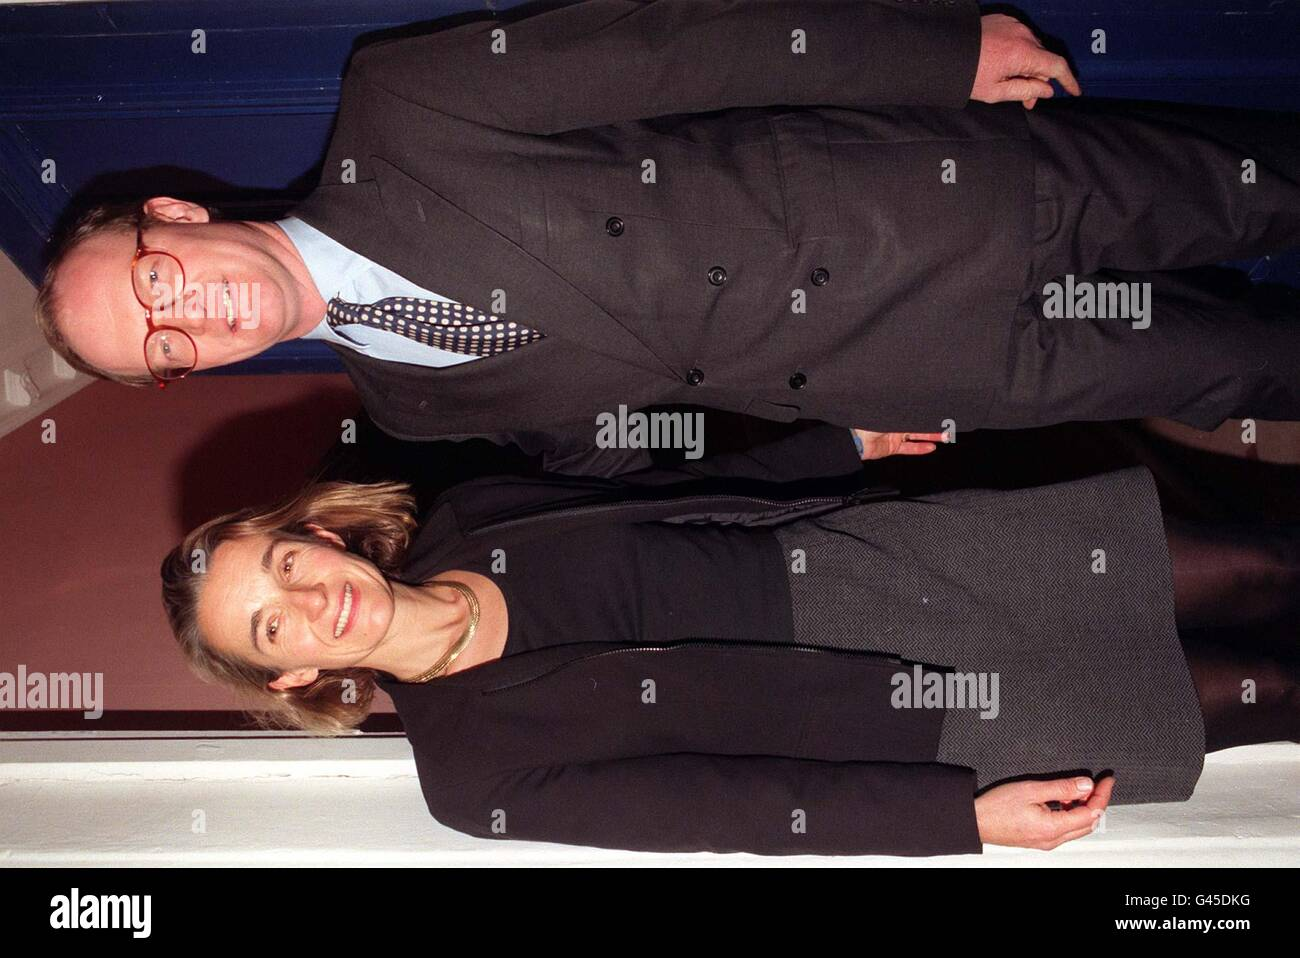 David Willetts with his wife Sarah pictured outside his London home this evening (Wed) hours after resigning as Paymaster General. Willetts quit office within minutes of publication of a report which accused him of dissembling - a word which can mean concealing or being insincere - before a Commons committee. Stock Photo